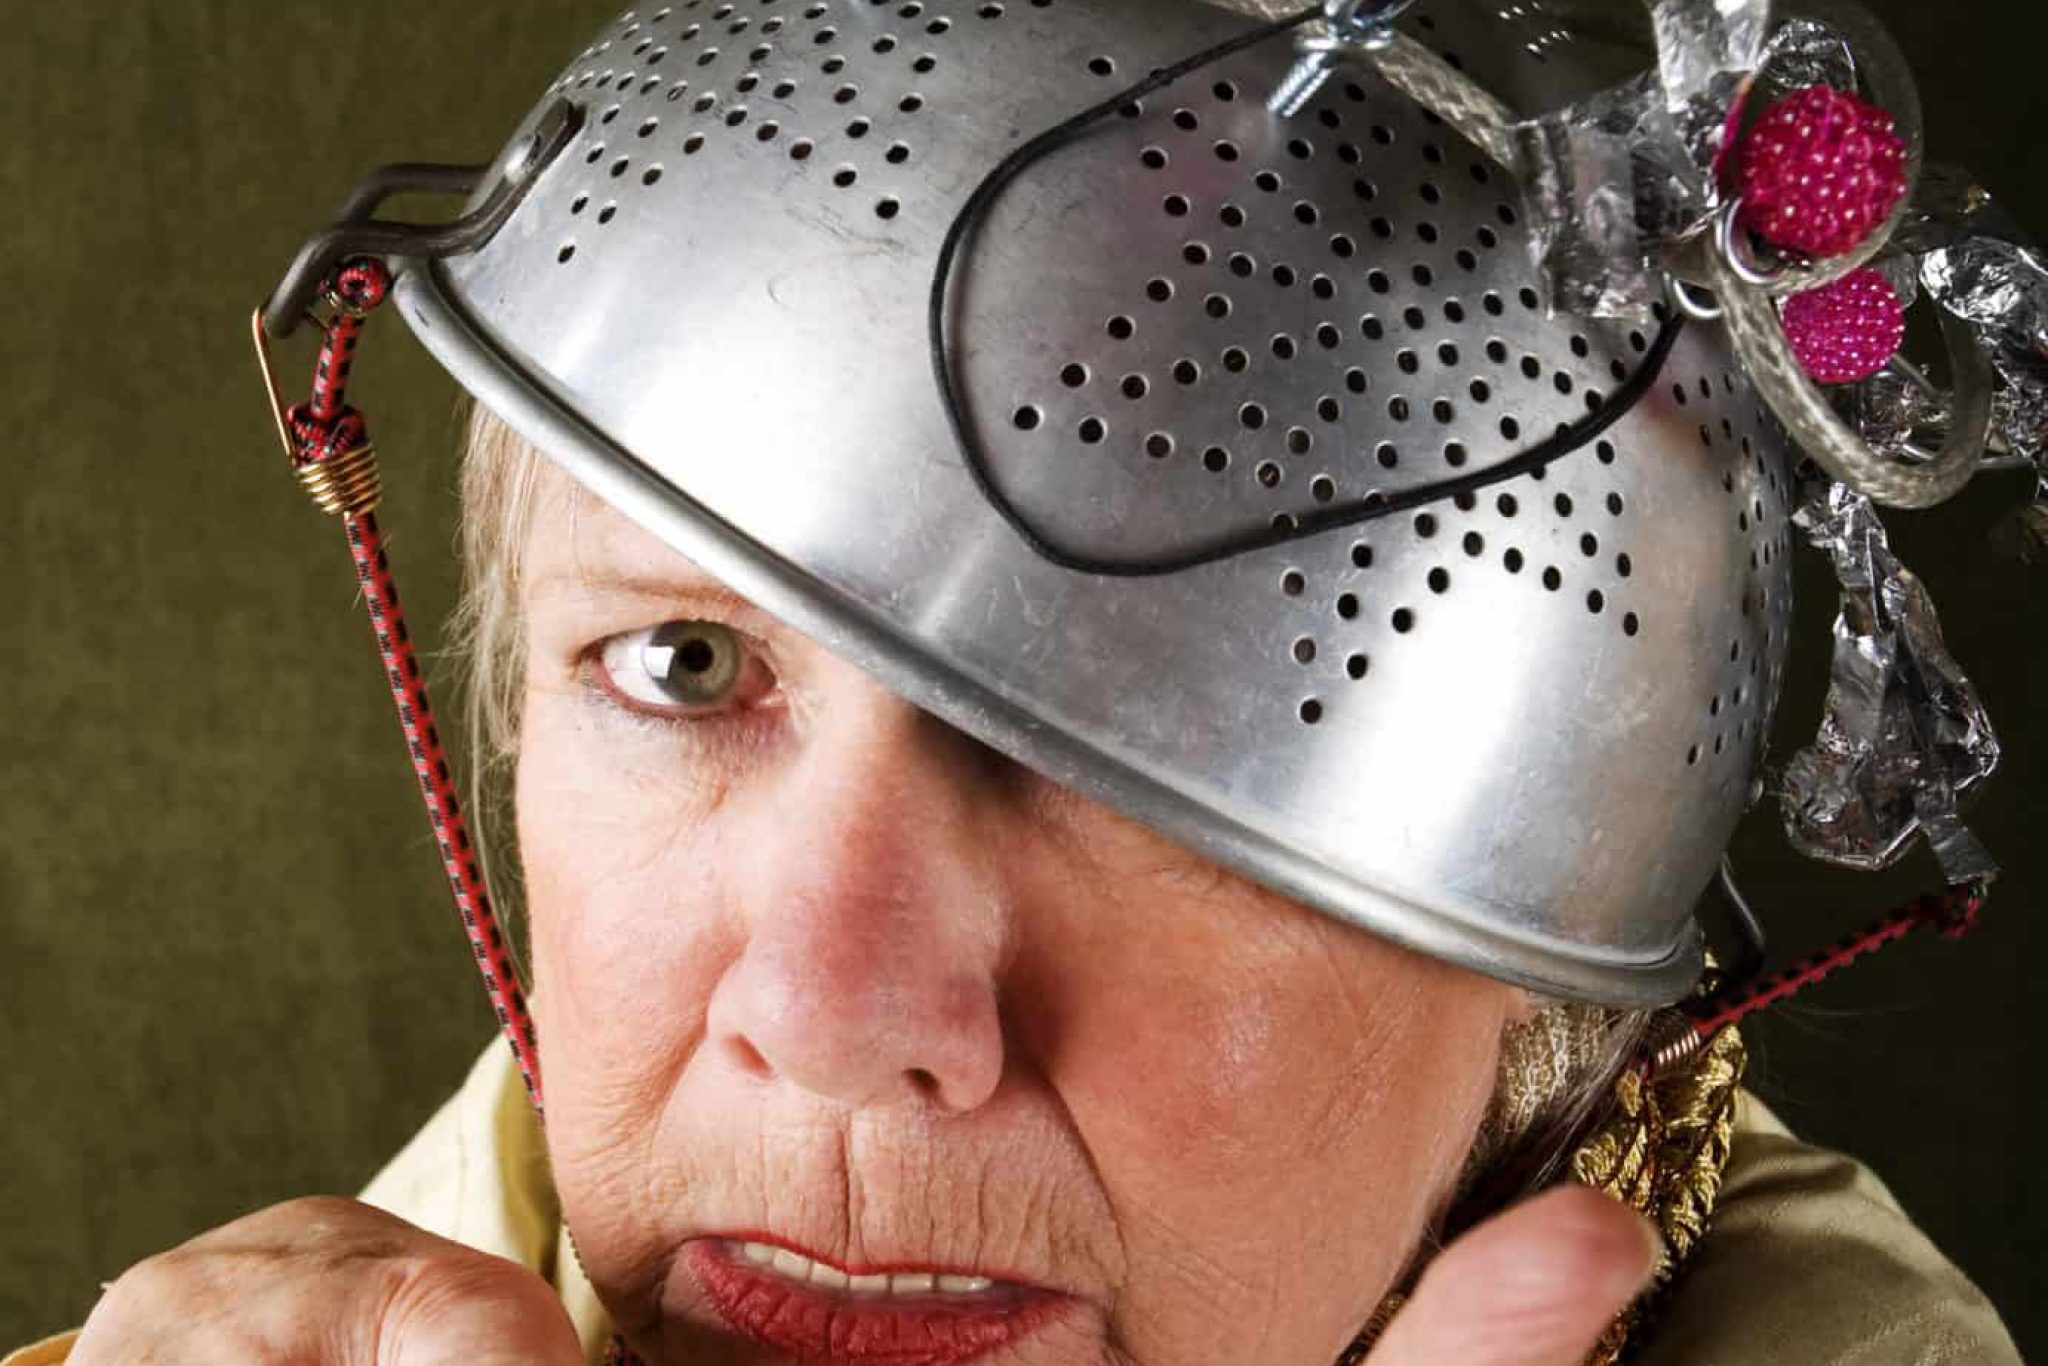 Crazy woman wearing a metal colander for a helmet